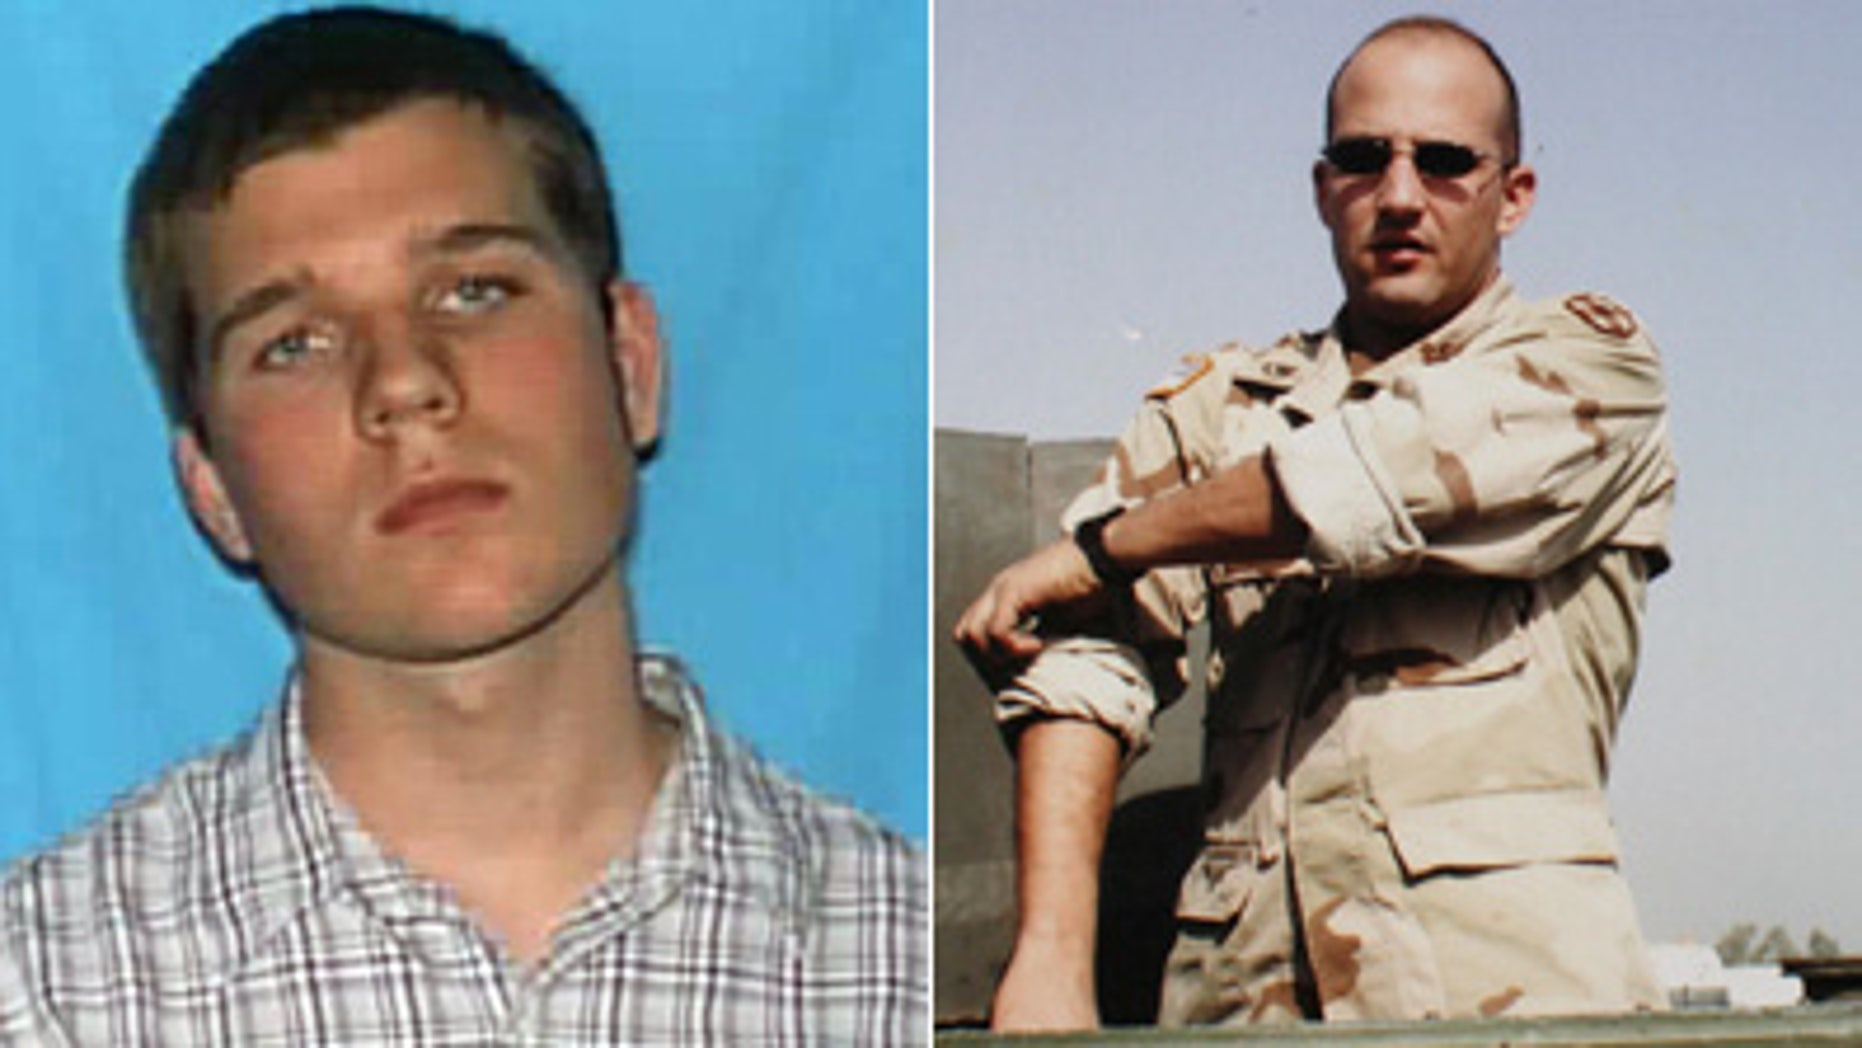 Ross Truett Ashley, age 22, left, was identified by police as the Virginia Tech gunman. Officer Deriek  W. Crouse, who was allegedly killed by Ashley on Friday Dec. 9, 2011, is seen at right during his 2003-2004 military tour in Iraq.